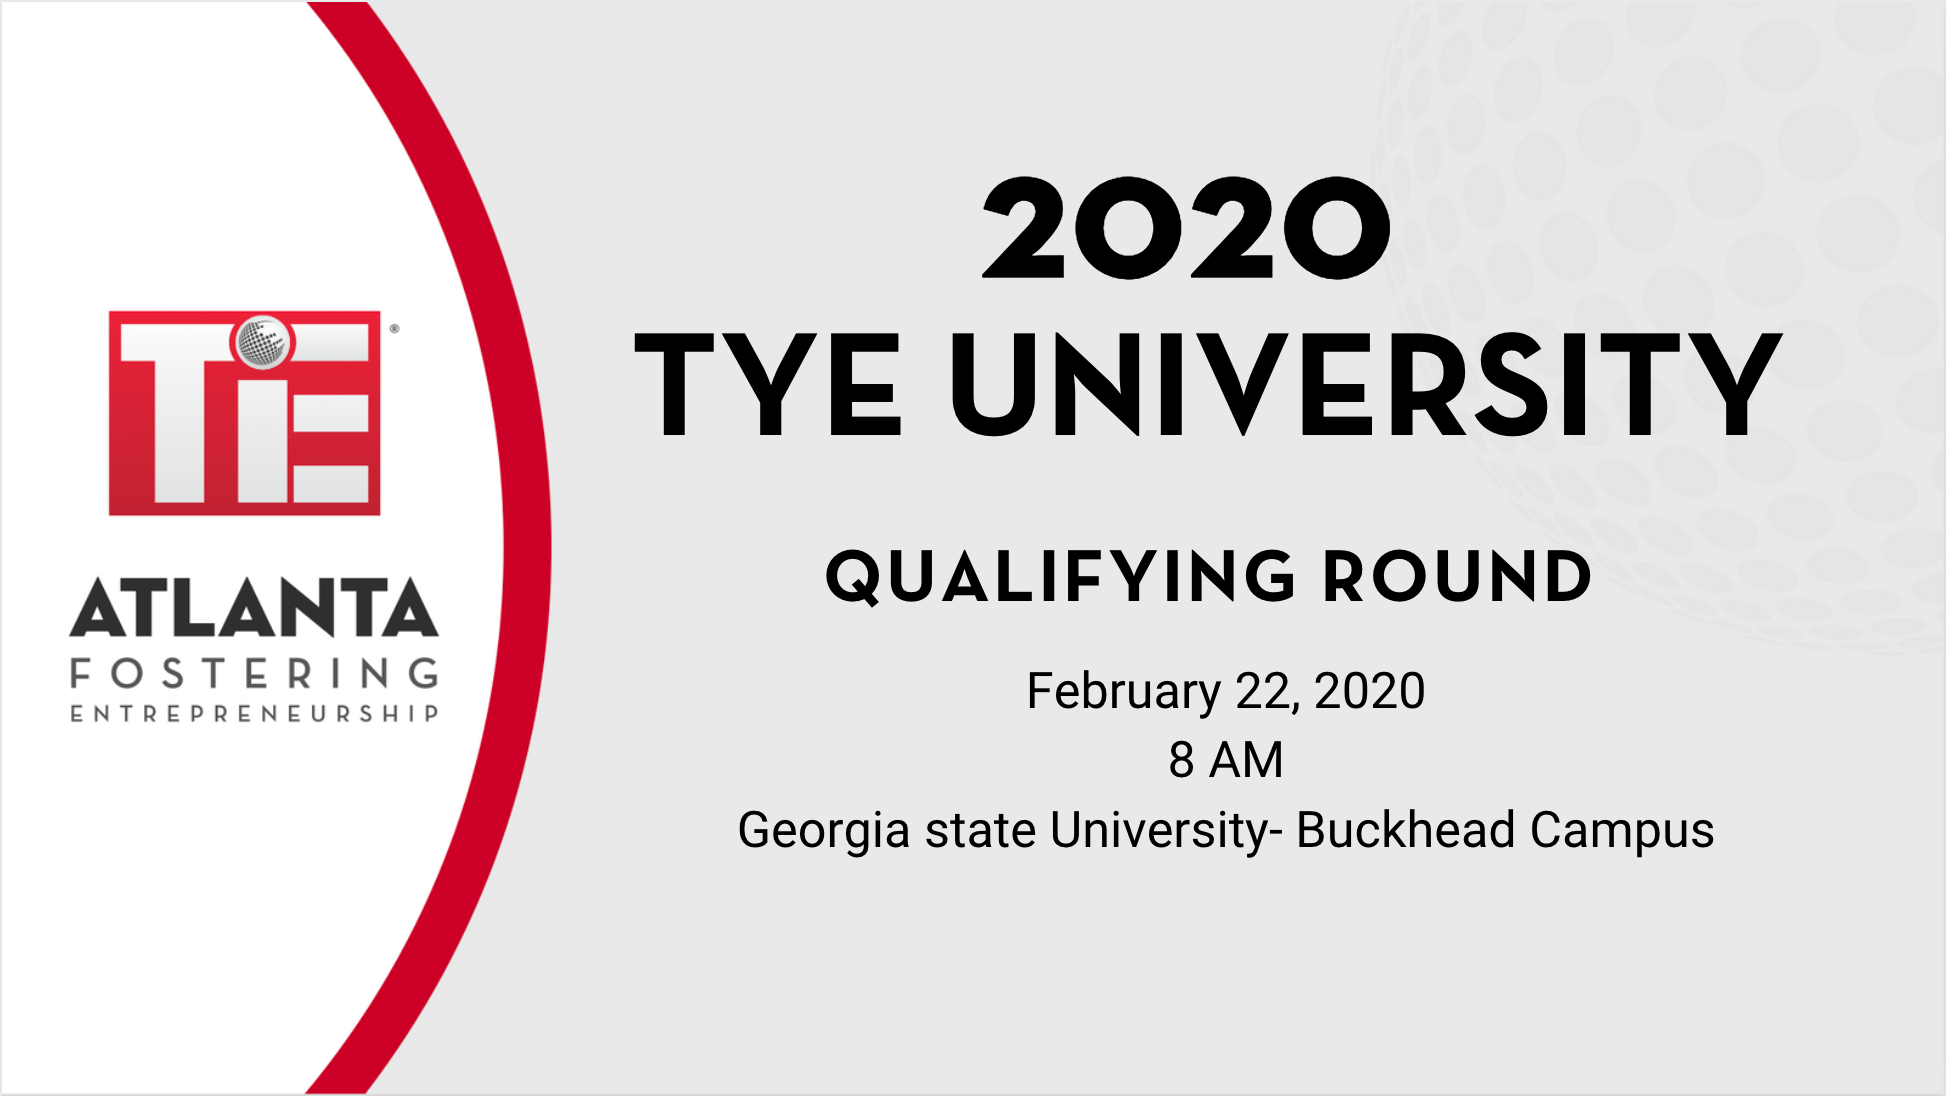 Book Tye University Qualifying Round 2020 Tickets, Atlanta | Tie Pertaining To Georgia State University Holiday Schedule 2020